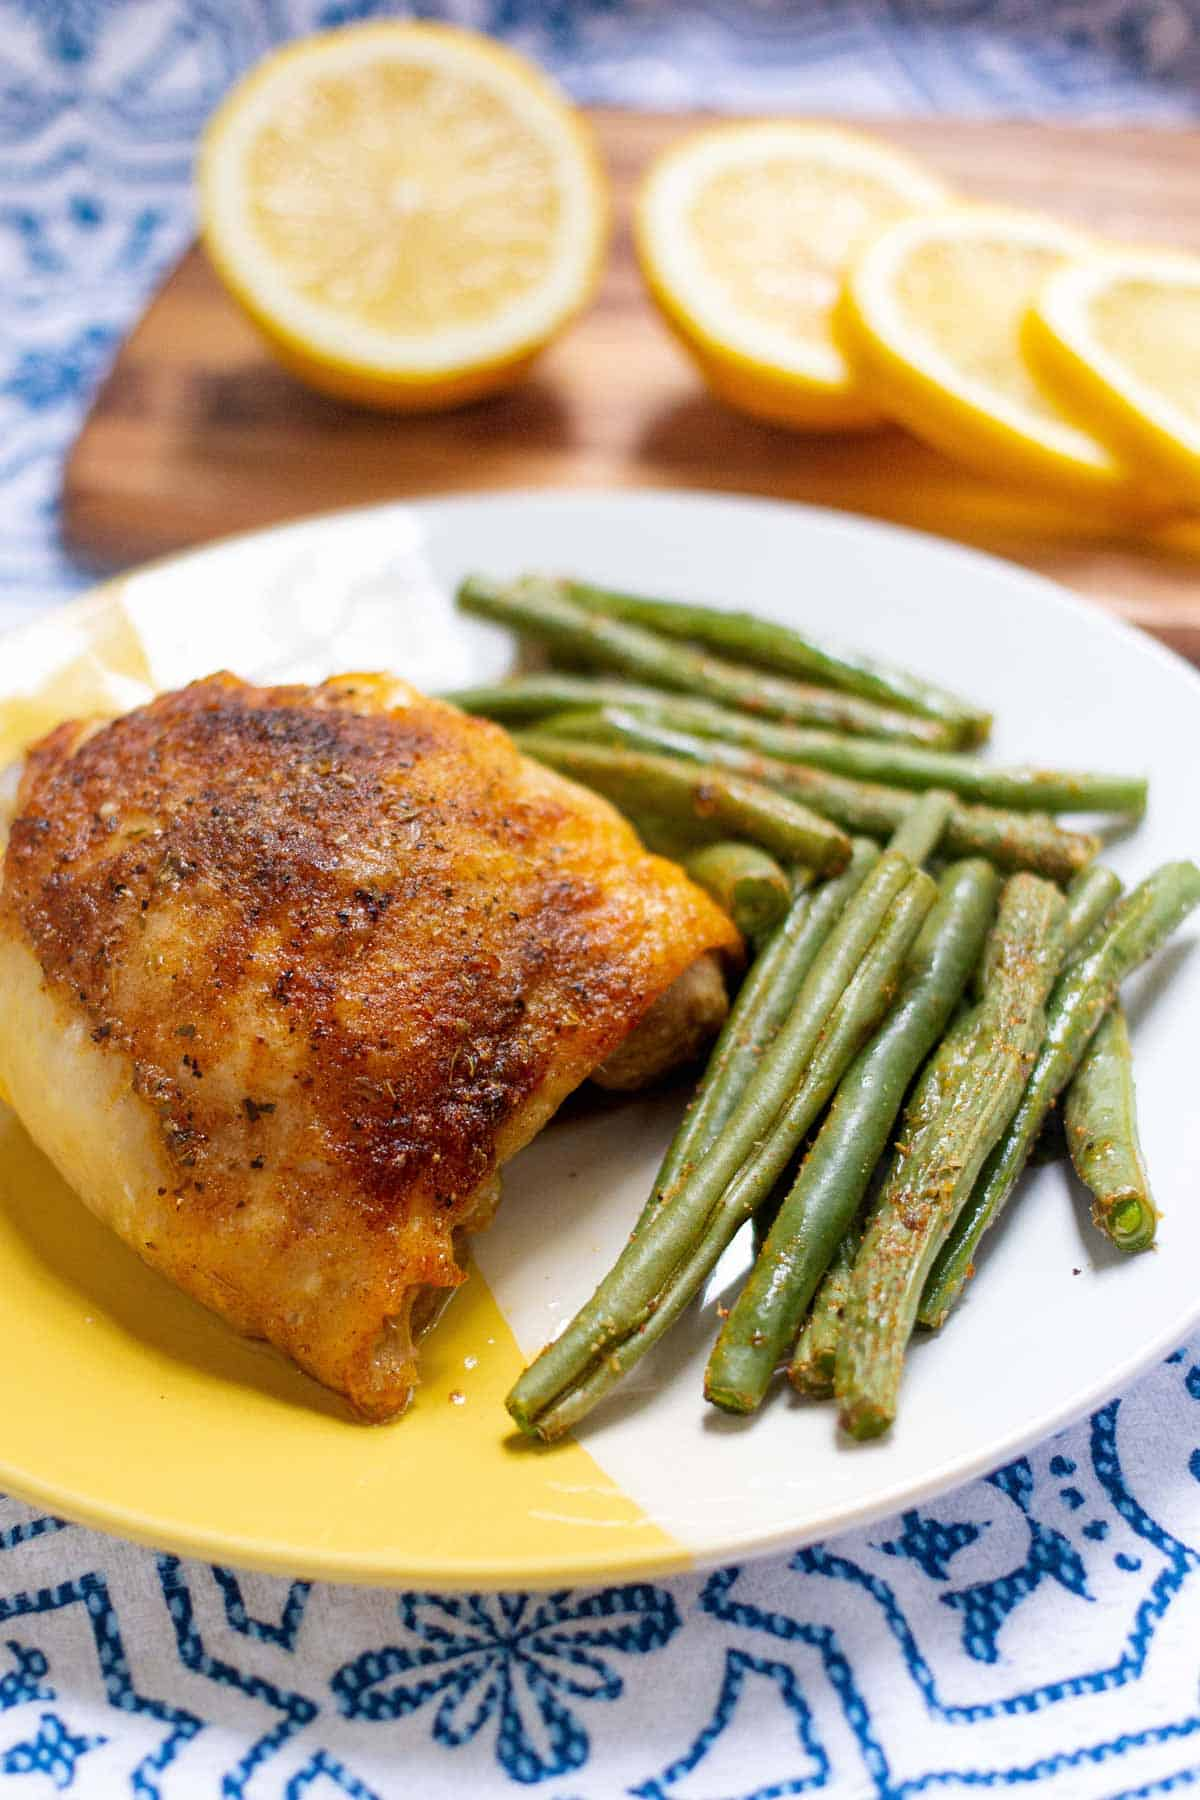 Baked chicken thigh plated with baked green beans.